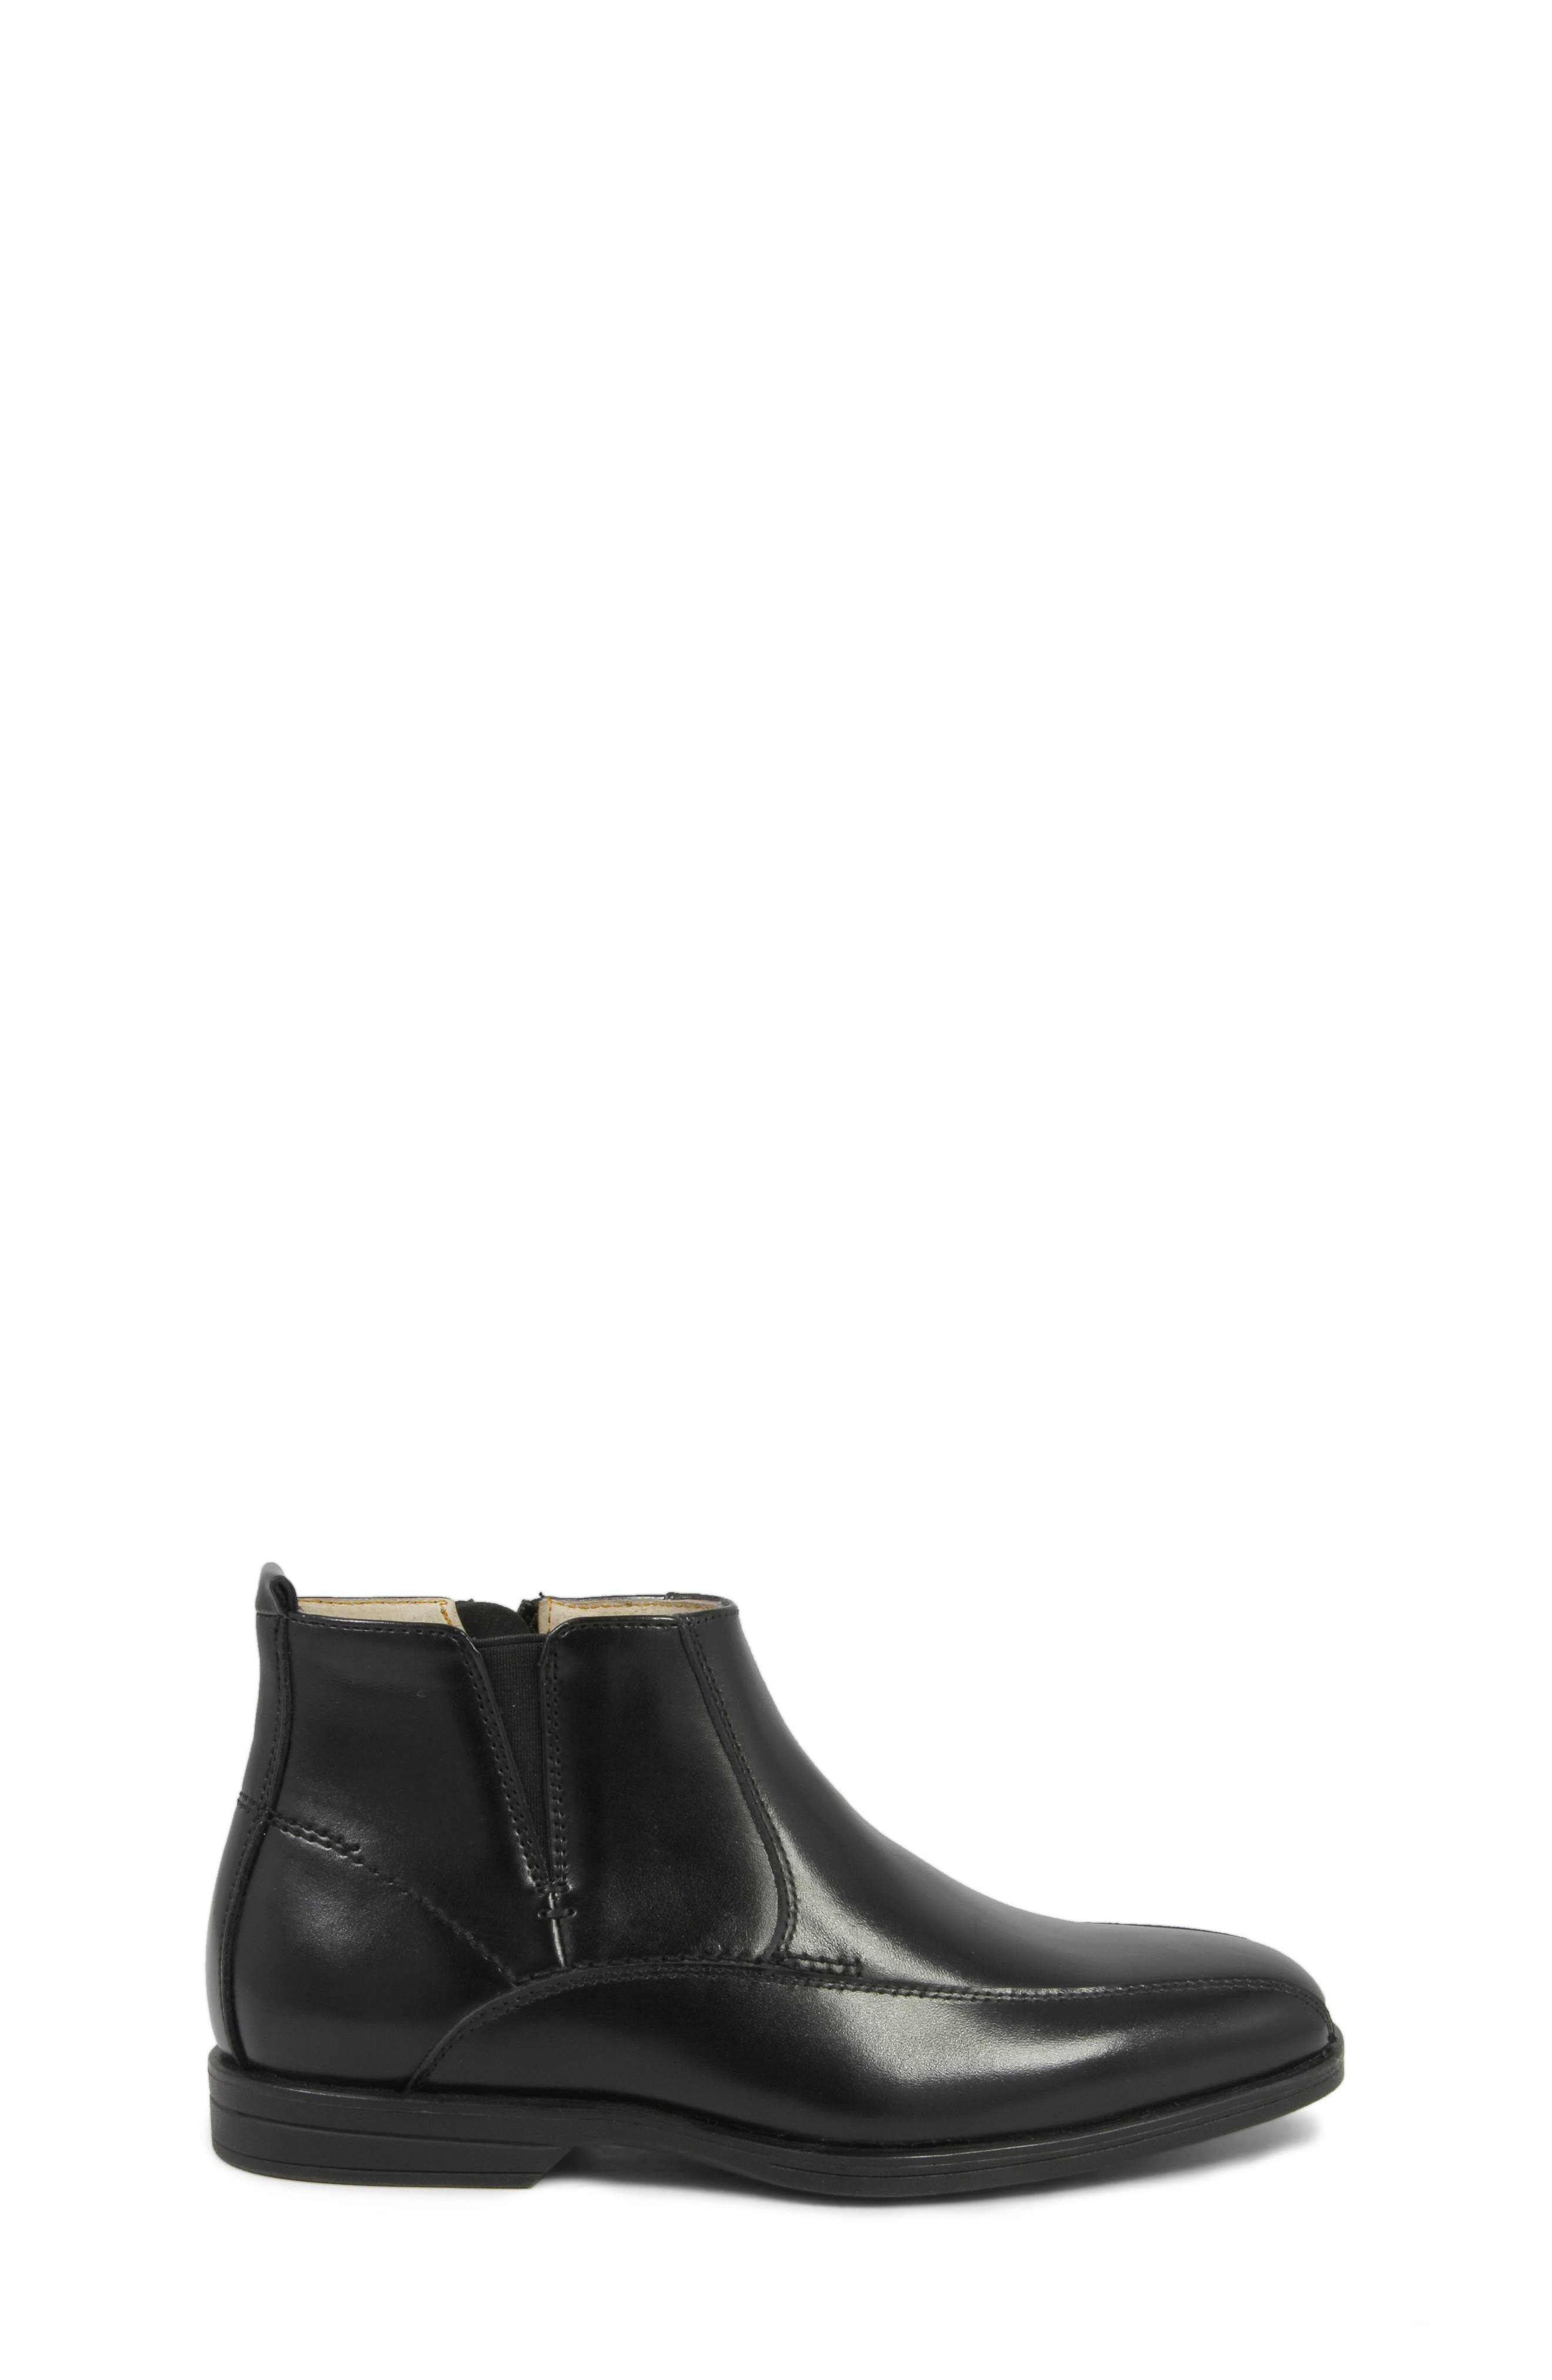 Reveal Chelsea Boot,                             Alternate thumbnail 4, color,                             BLACK